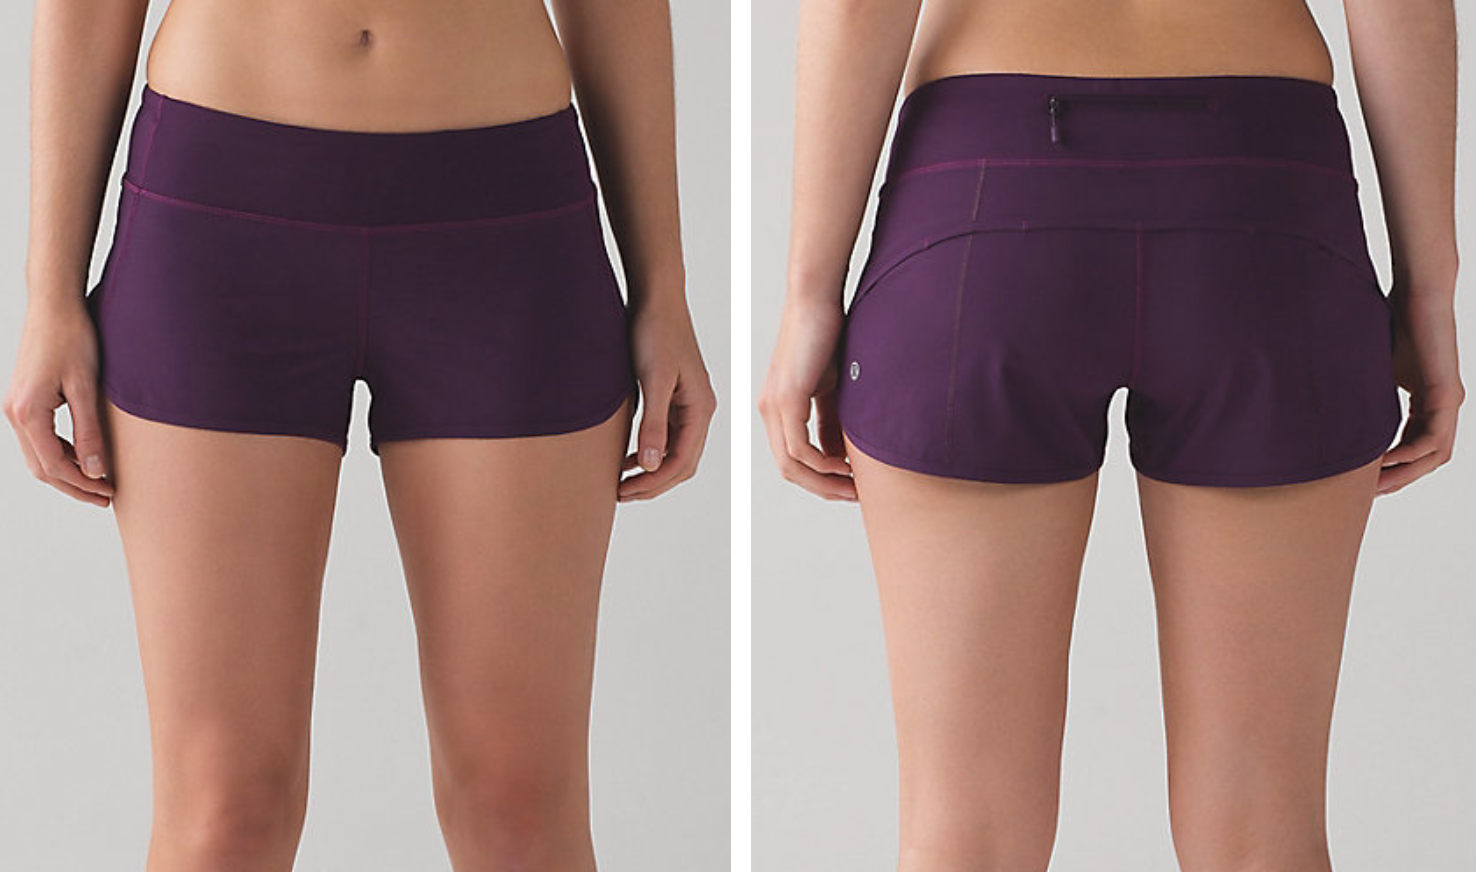 https://api.shopstyle.com/action/apiVisitRetailer?url=https%3A%2F%2Fshop.lululemon.com%2Fp%2Fwomen-shorts%2FRun-Speed-Short-32138%2F_%2Fprod3040012%3Frcnt%3D33%26N%3D1z13ziiZ7vf%26cnt%3D46%26color%3DLW7578S_026099&site=www.shopstyle.ca&pid=uid6784-25288972-7